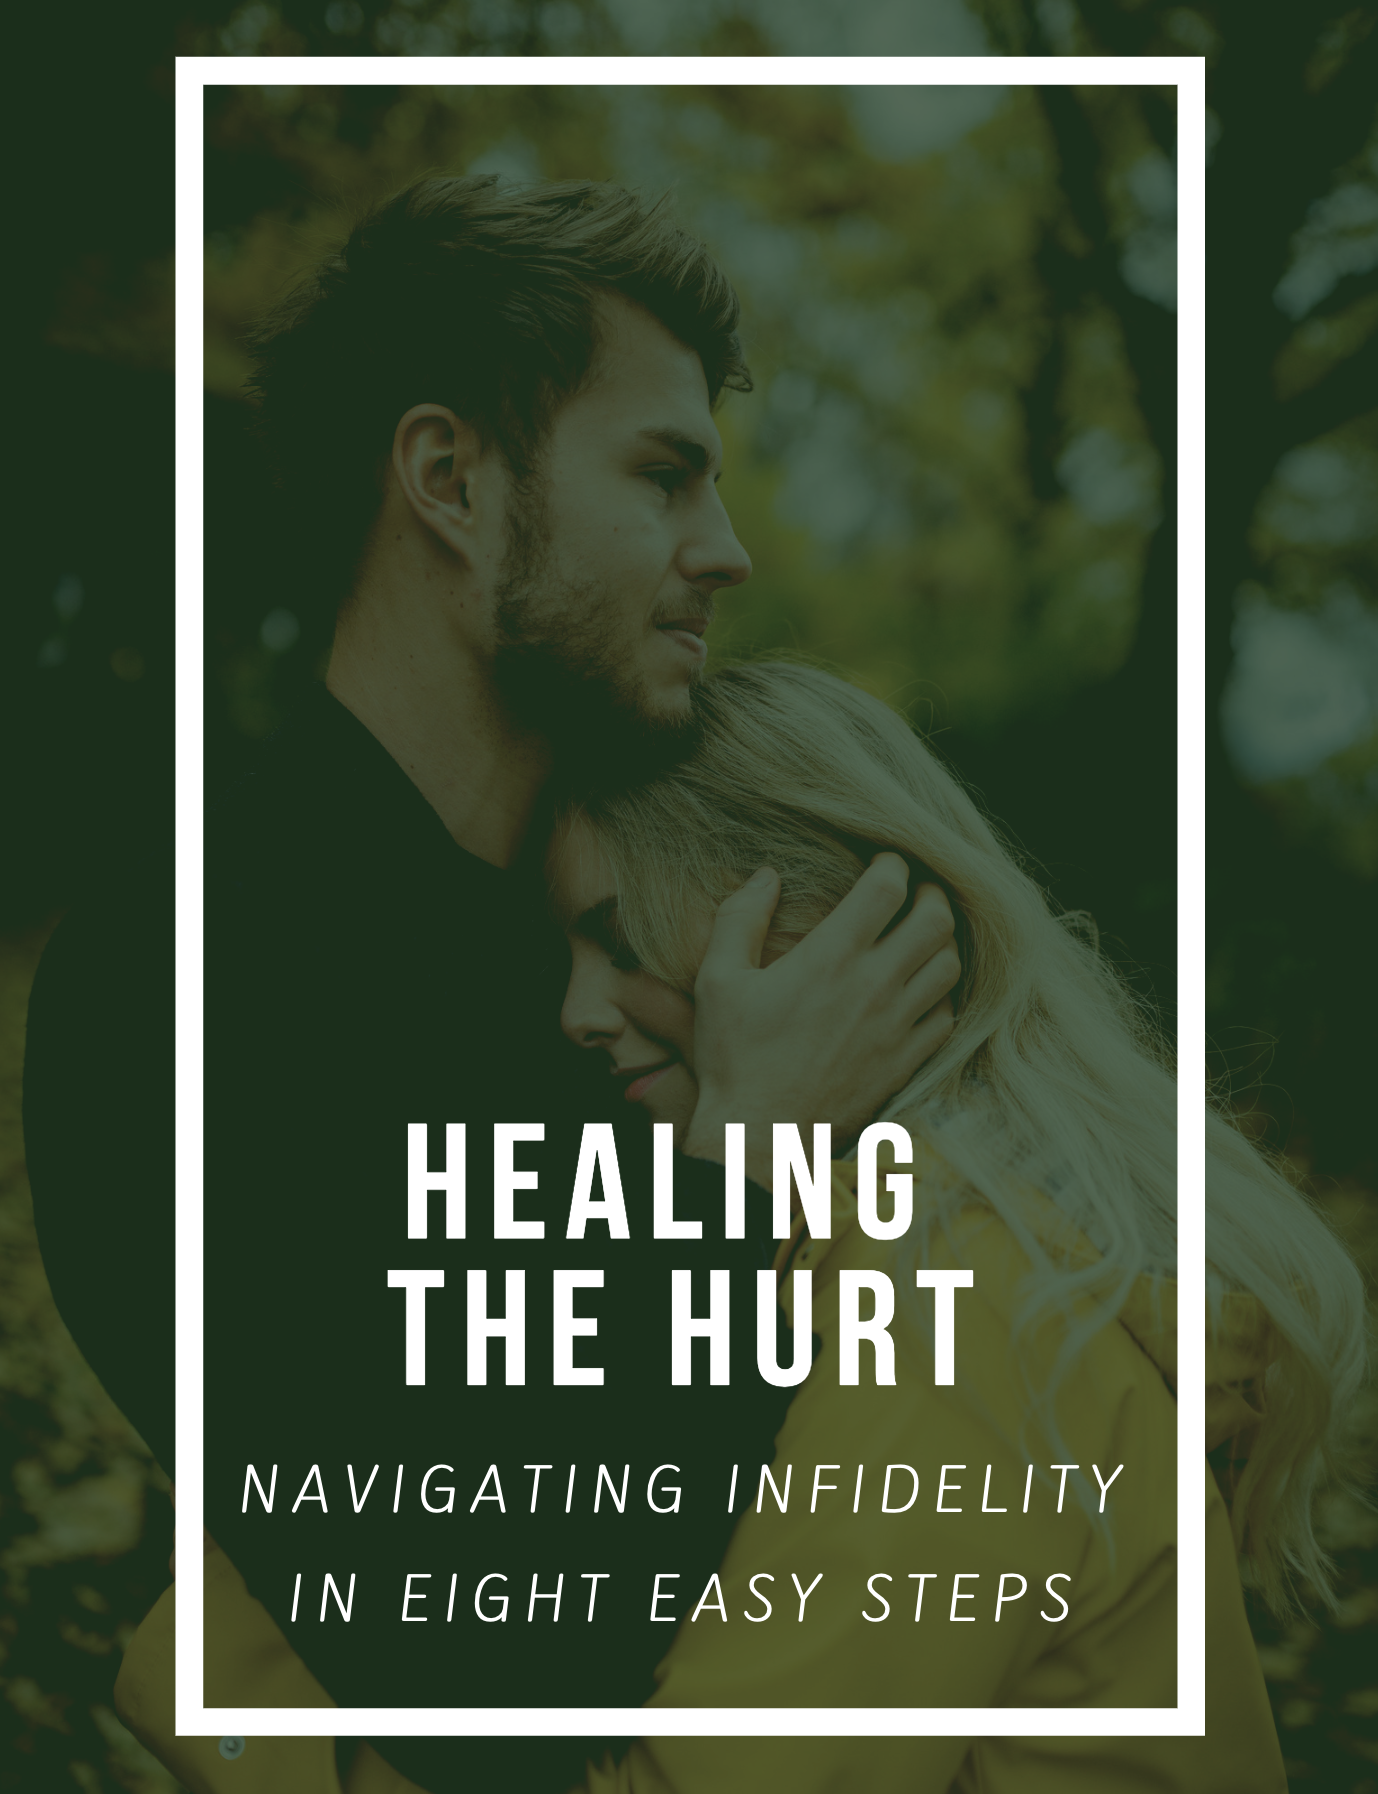 an e-book for healing and hope - with Dr. Kendra A. O'Hora, Licensed Clinical Marriage and Family Therapist